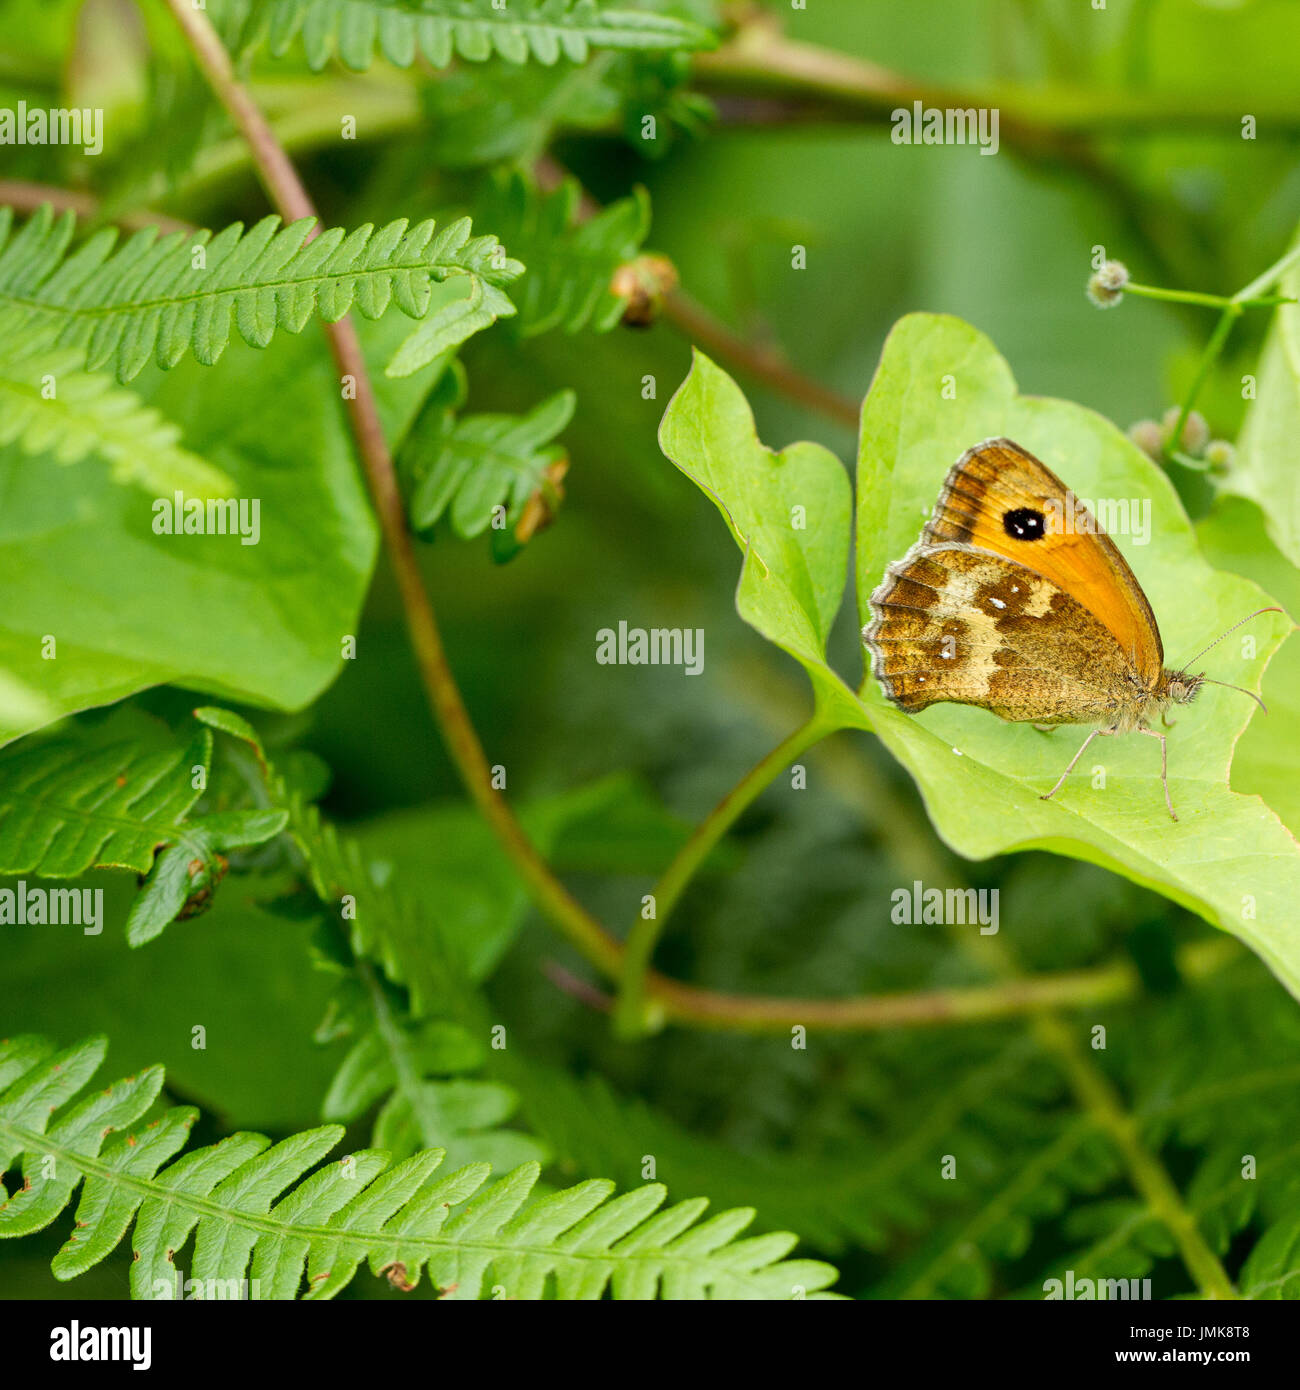 Pyronia tithonus, Gatekeeper butterfly, or hedge brown, on a leaf in an English woodland in summertime, Hampshire, England, UK - Stock Image